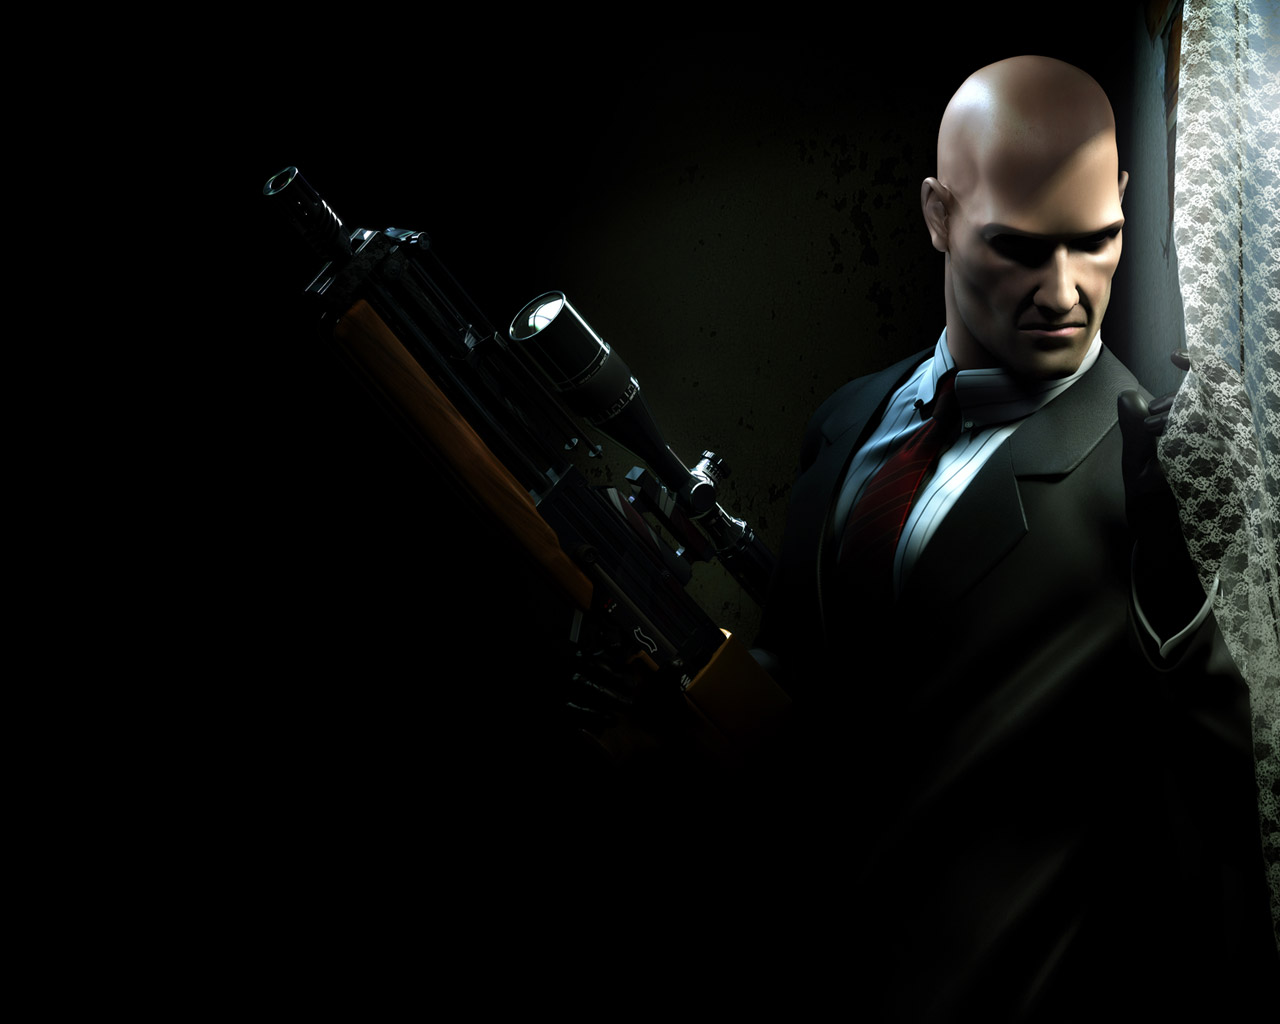 Free Hitman: Contracts Wallpaper in 1280x1024